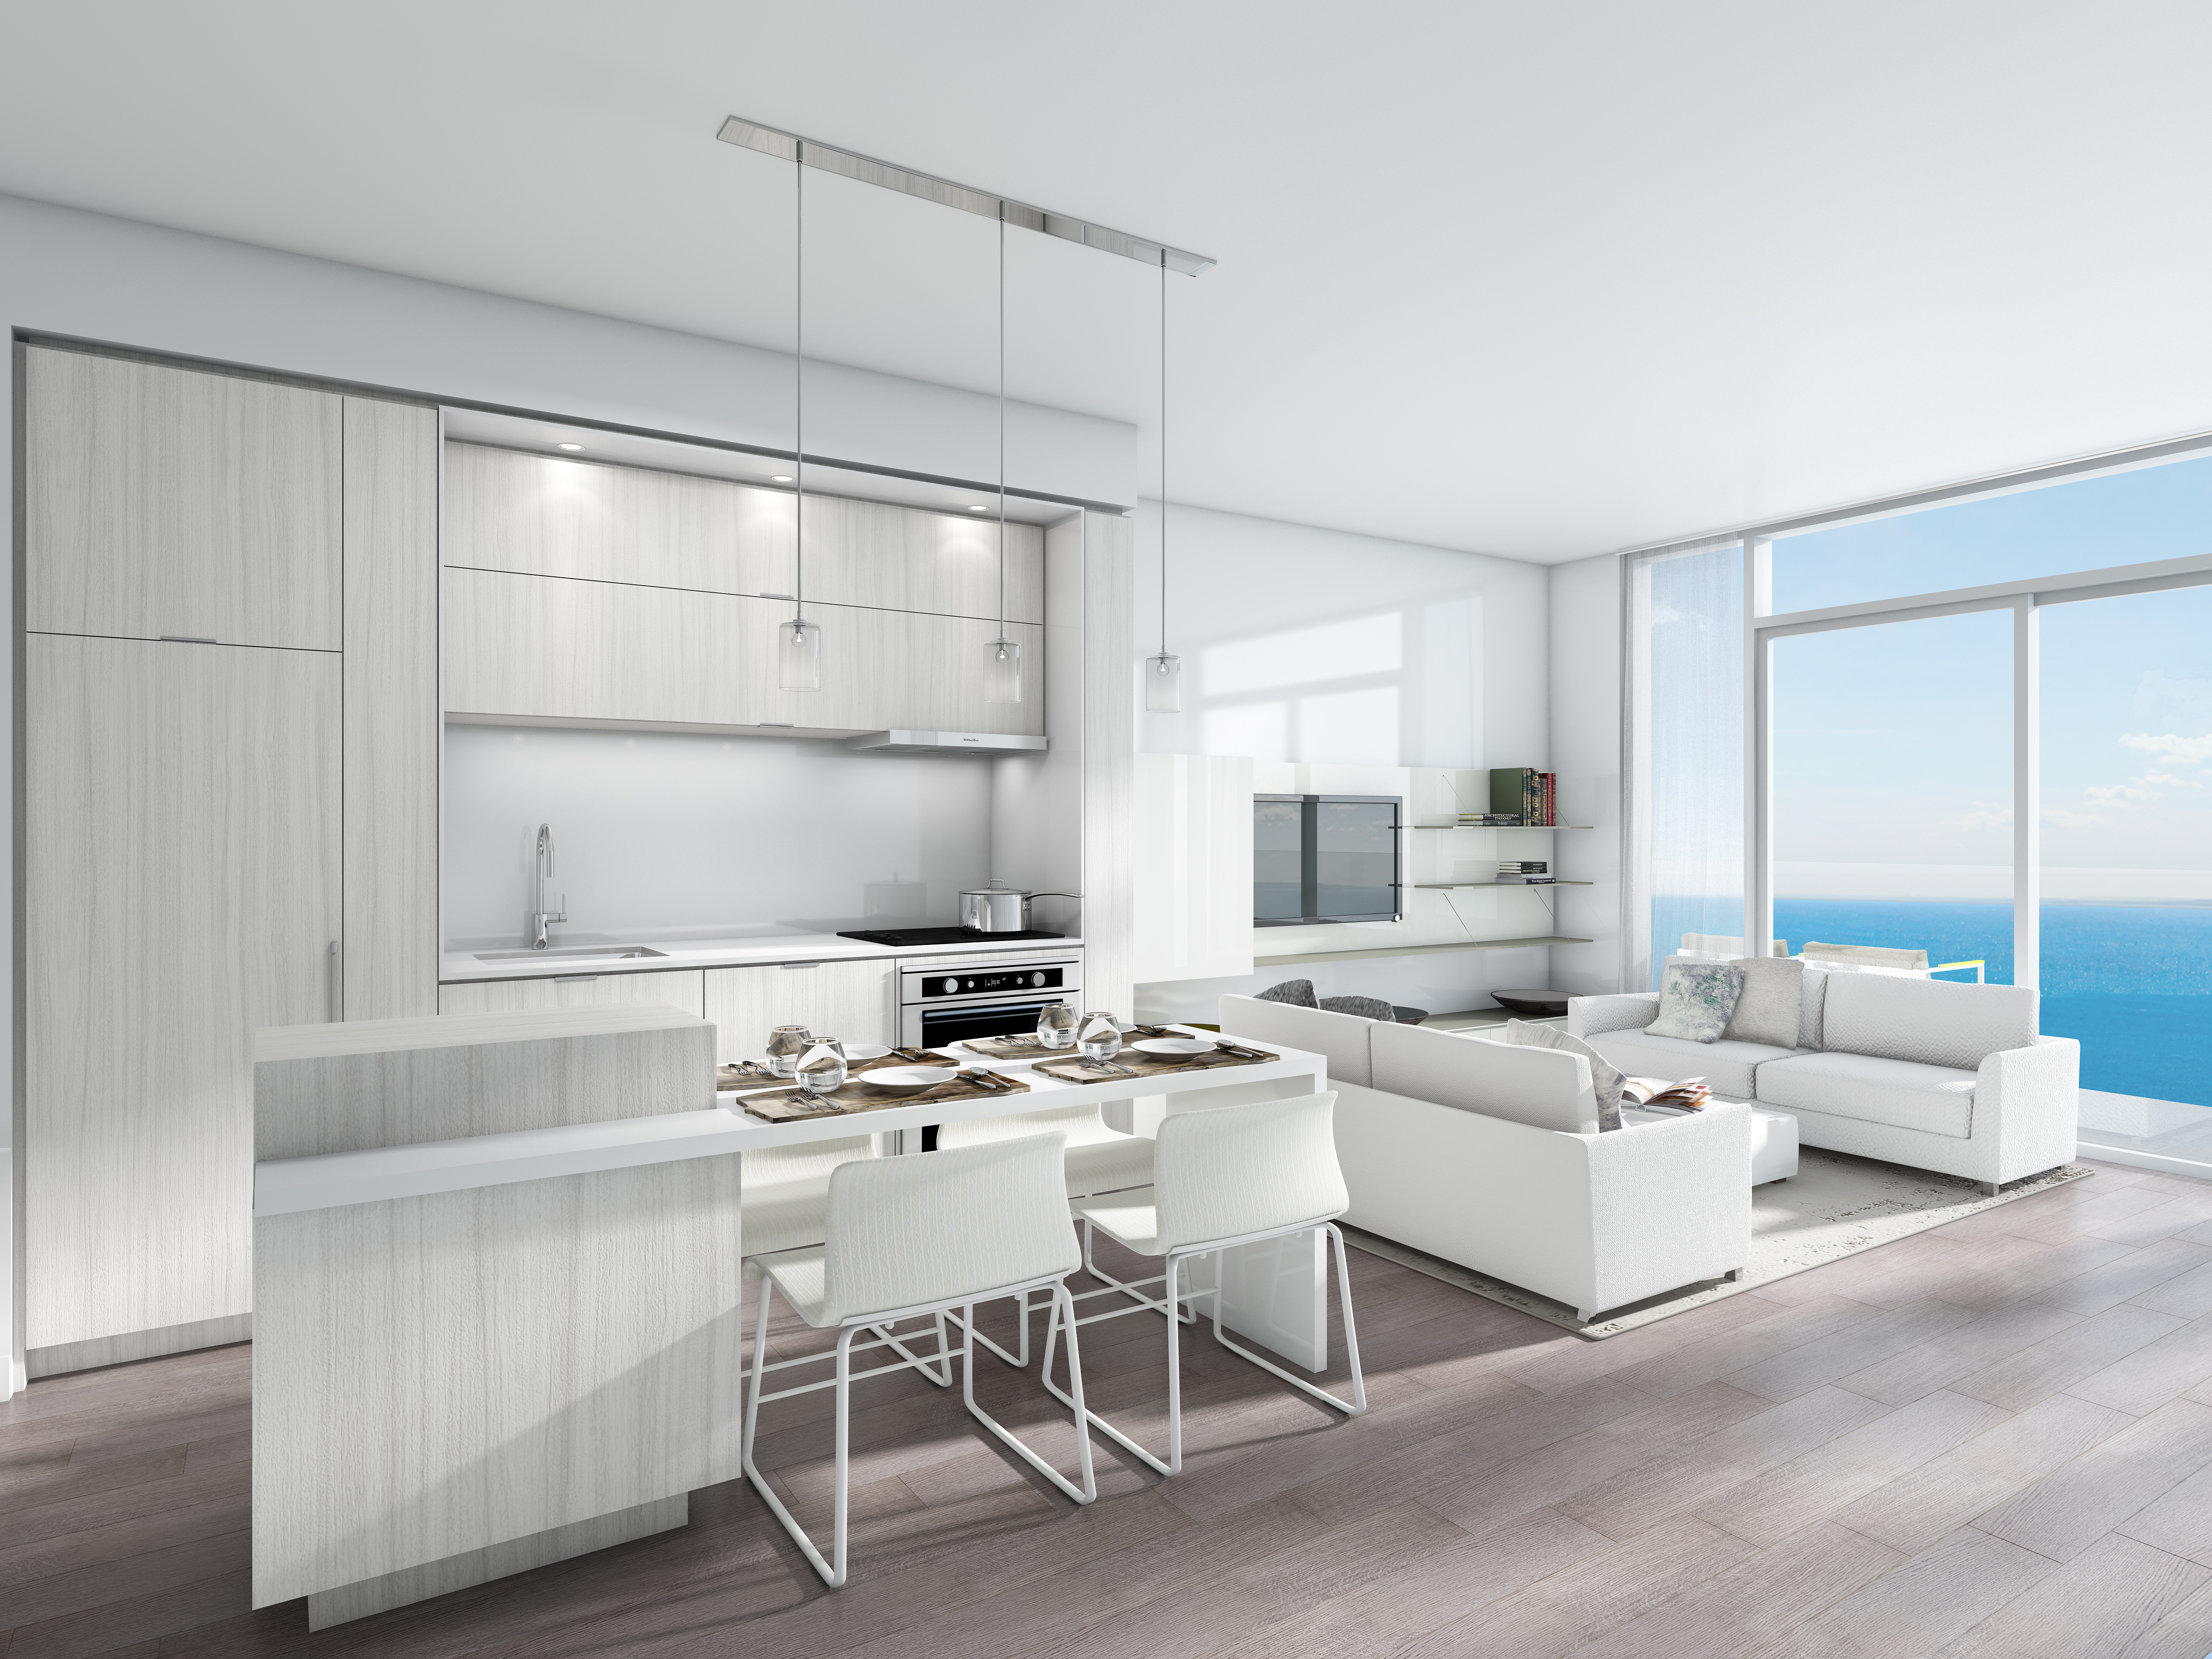 Form follows function in clean linear style, giving way to modern, open-concept spaces. Neutral palettes allow for spaces to flow effortlessly into one another with uninterrupted energy